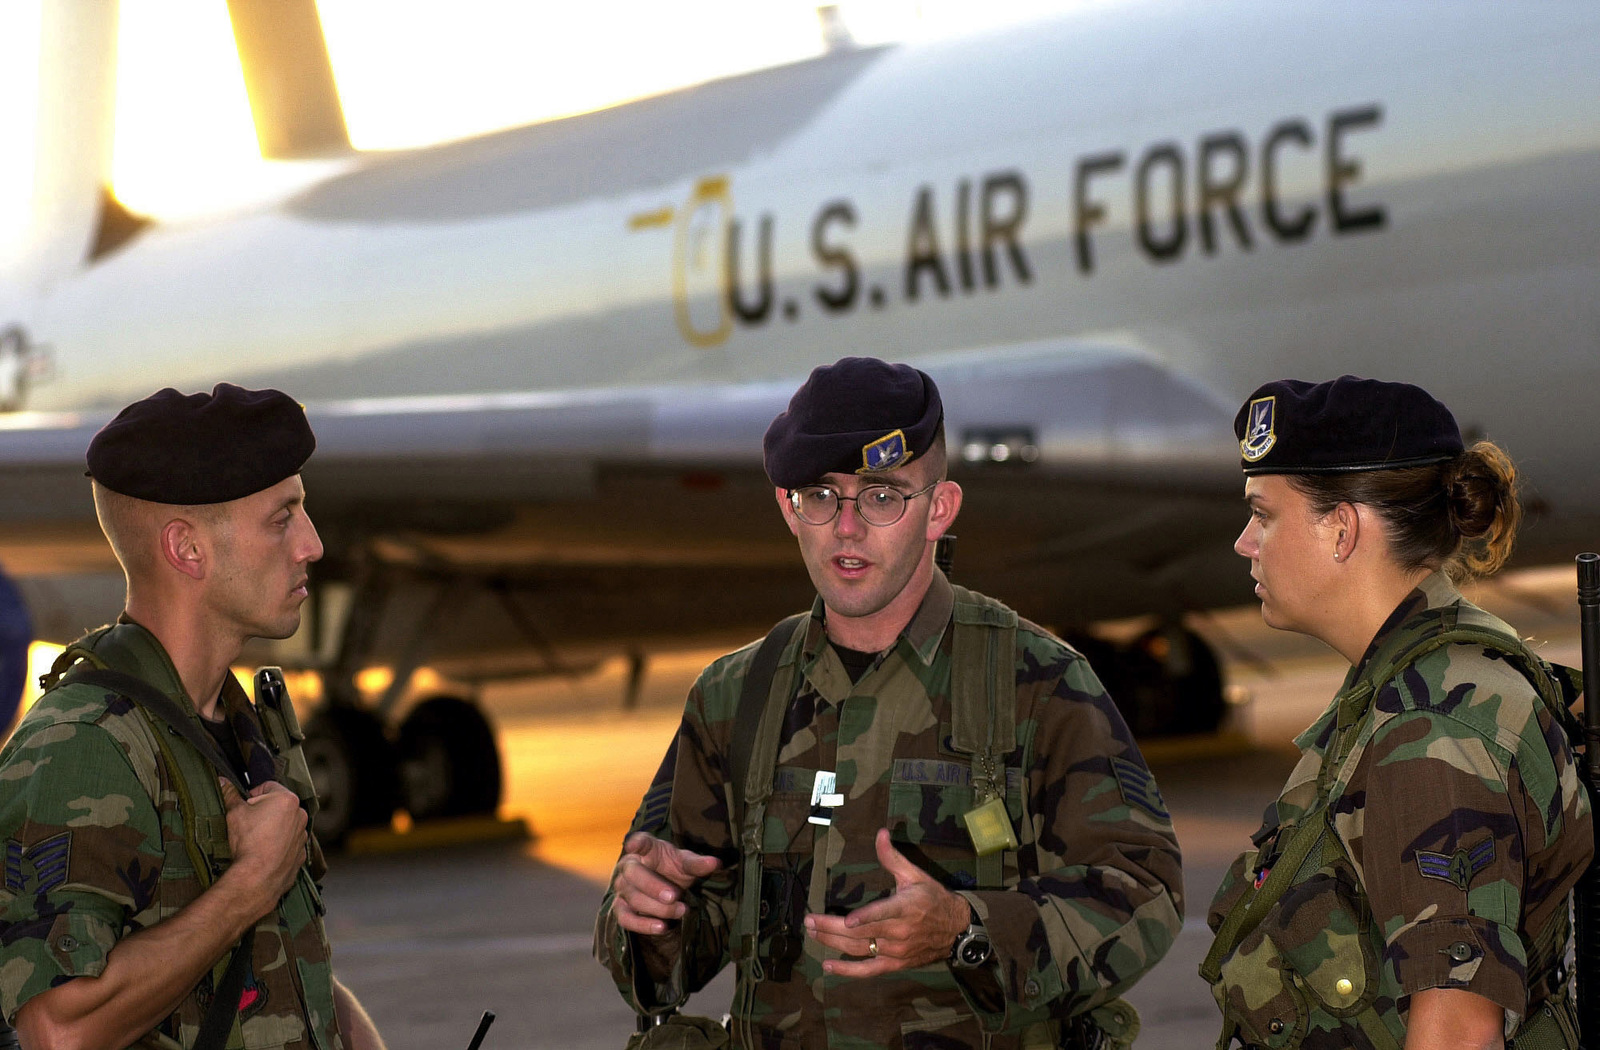 US Air Force (USAF) Security Police (SP), discuss security procedures while guarding USAF E-3C Sentry Airborne Early Warning and Control System (AWACS) aircraft on the flight line at Incirlik Air Base (AB), Turkey, while deployed in support of Operation NORTHERN WATCH. Pictured left-to-right, USAF STAFF Sergeant (SSGT) Paul Evans, 172nd Fighter Wing (FW); USAF SSGT John Duly, 175th FW; and USAF AIRMAN First Class (A1C) Shelly Byers, 325th FW